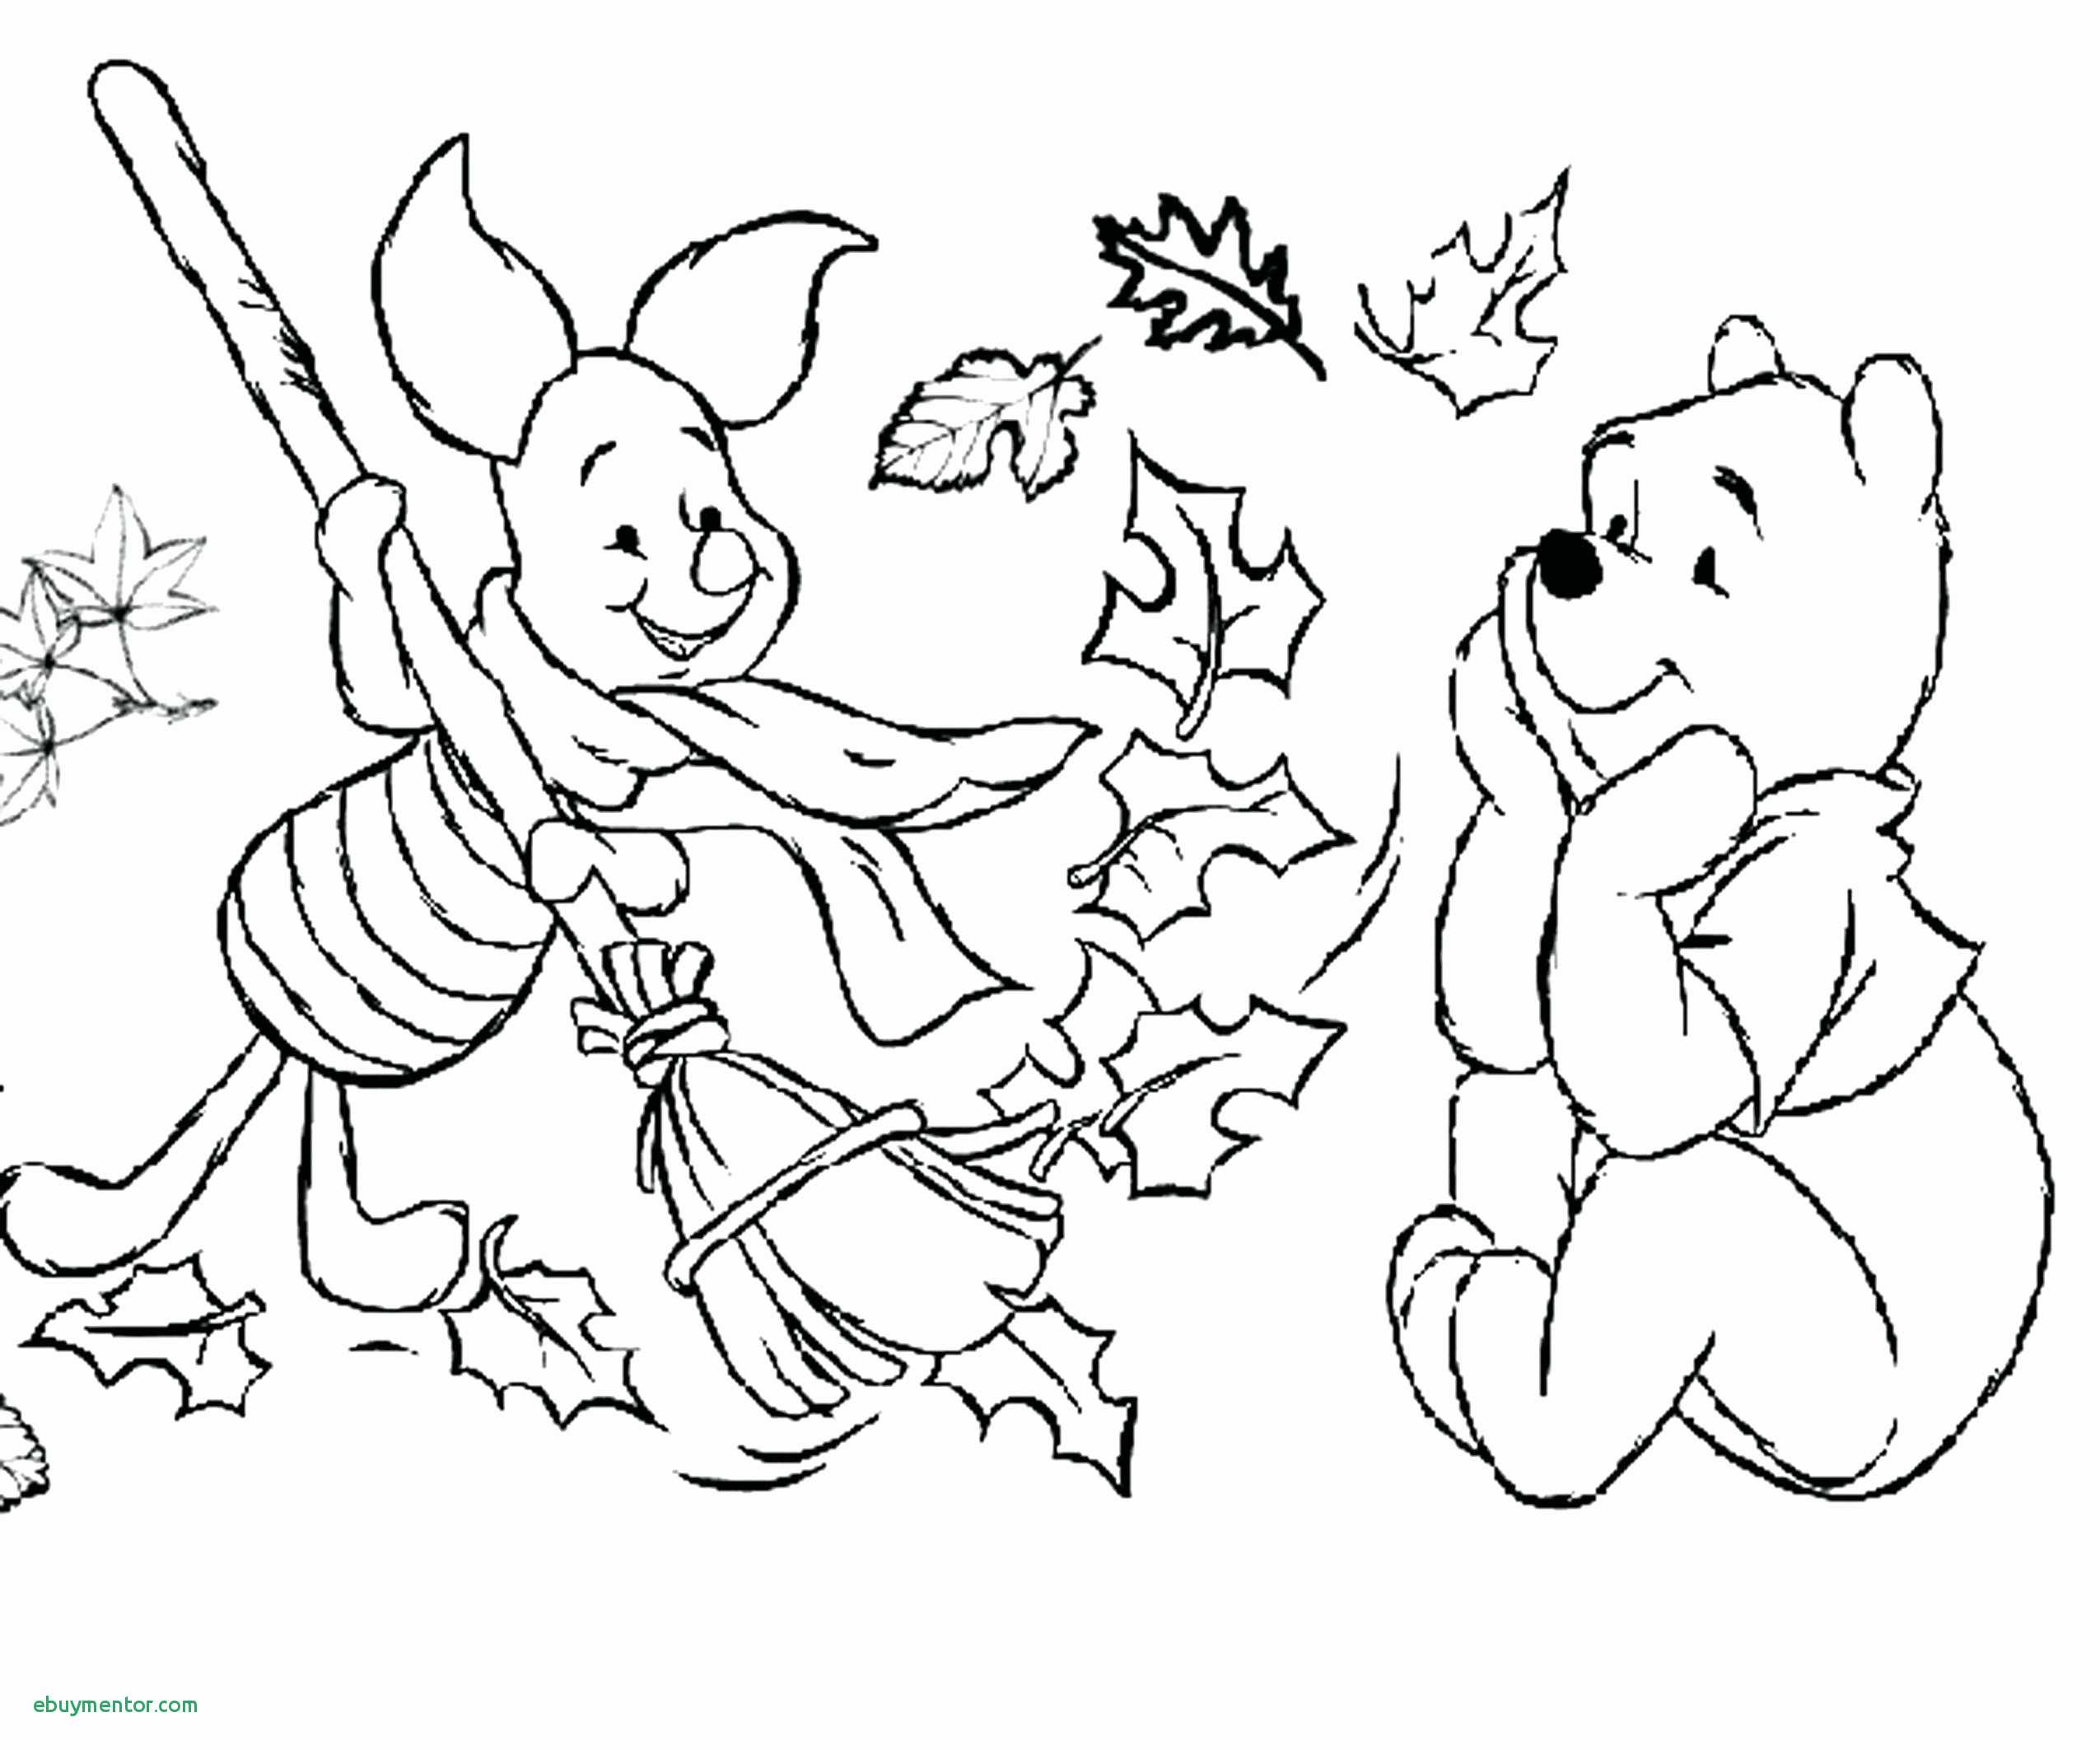 print coloring pages Collection-Www Printable Coloring Pages 9-k